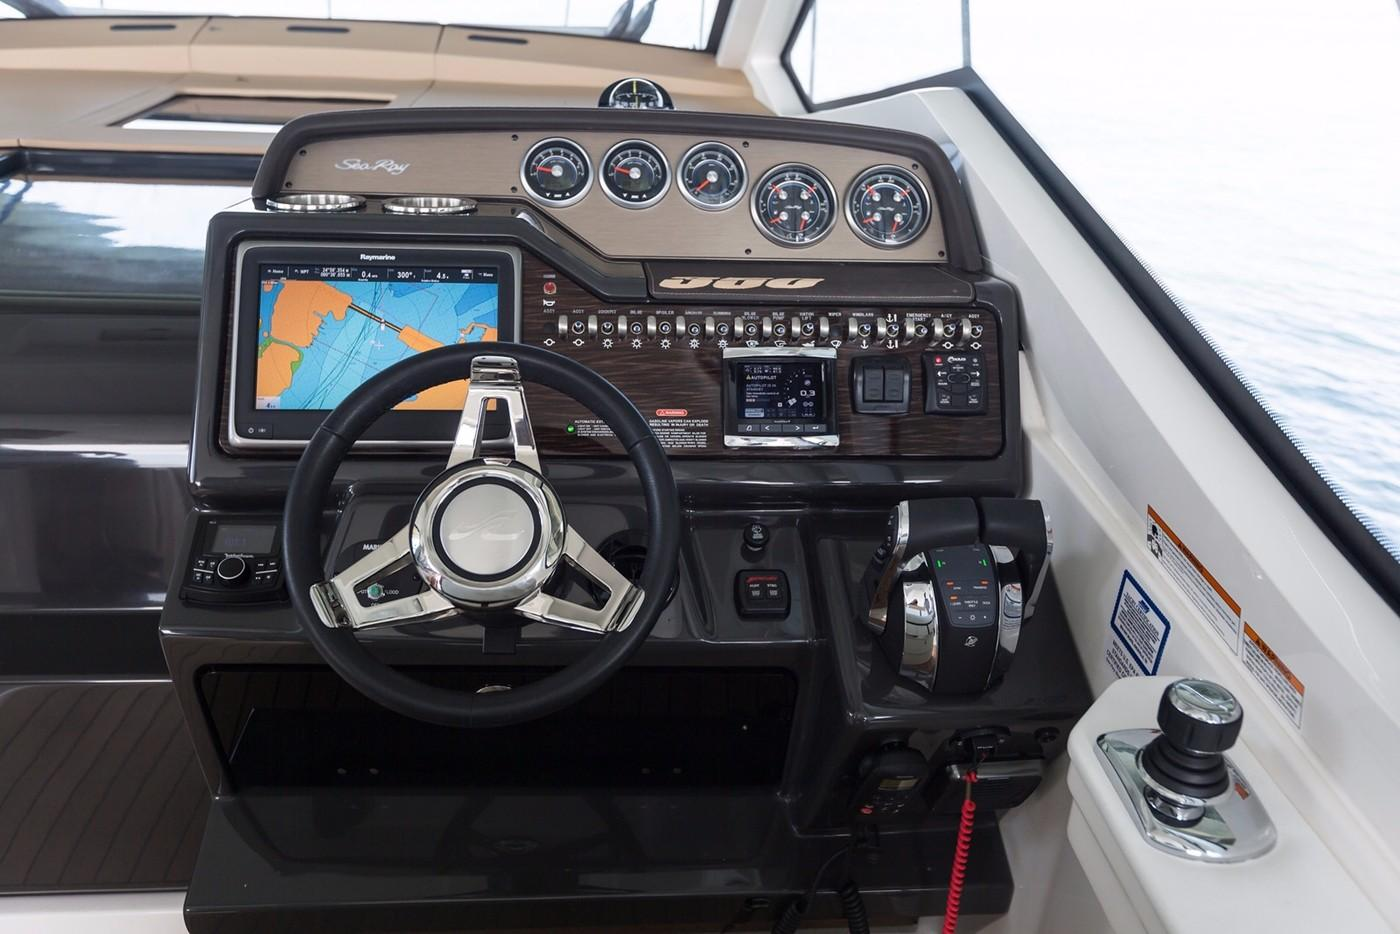 2018 Sea Ray Sundancer 350 Coup #TB1465DH inventory image at Sun Country Coastal in San Diego